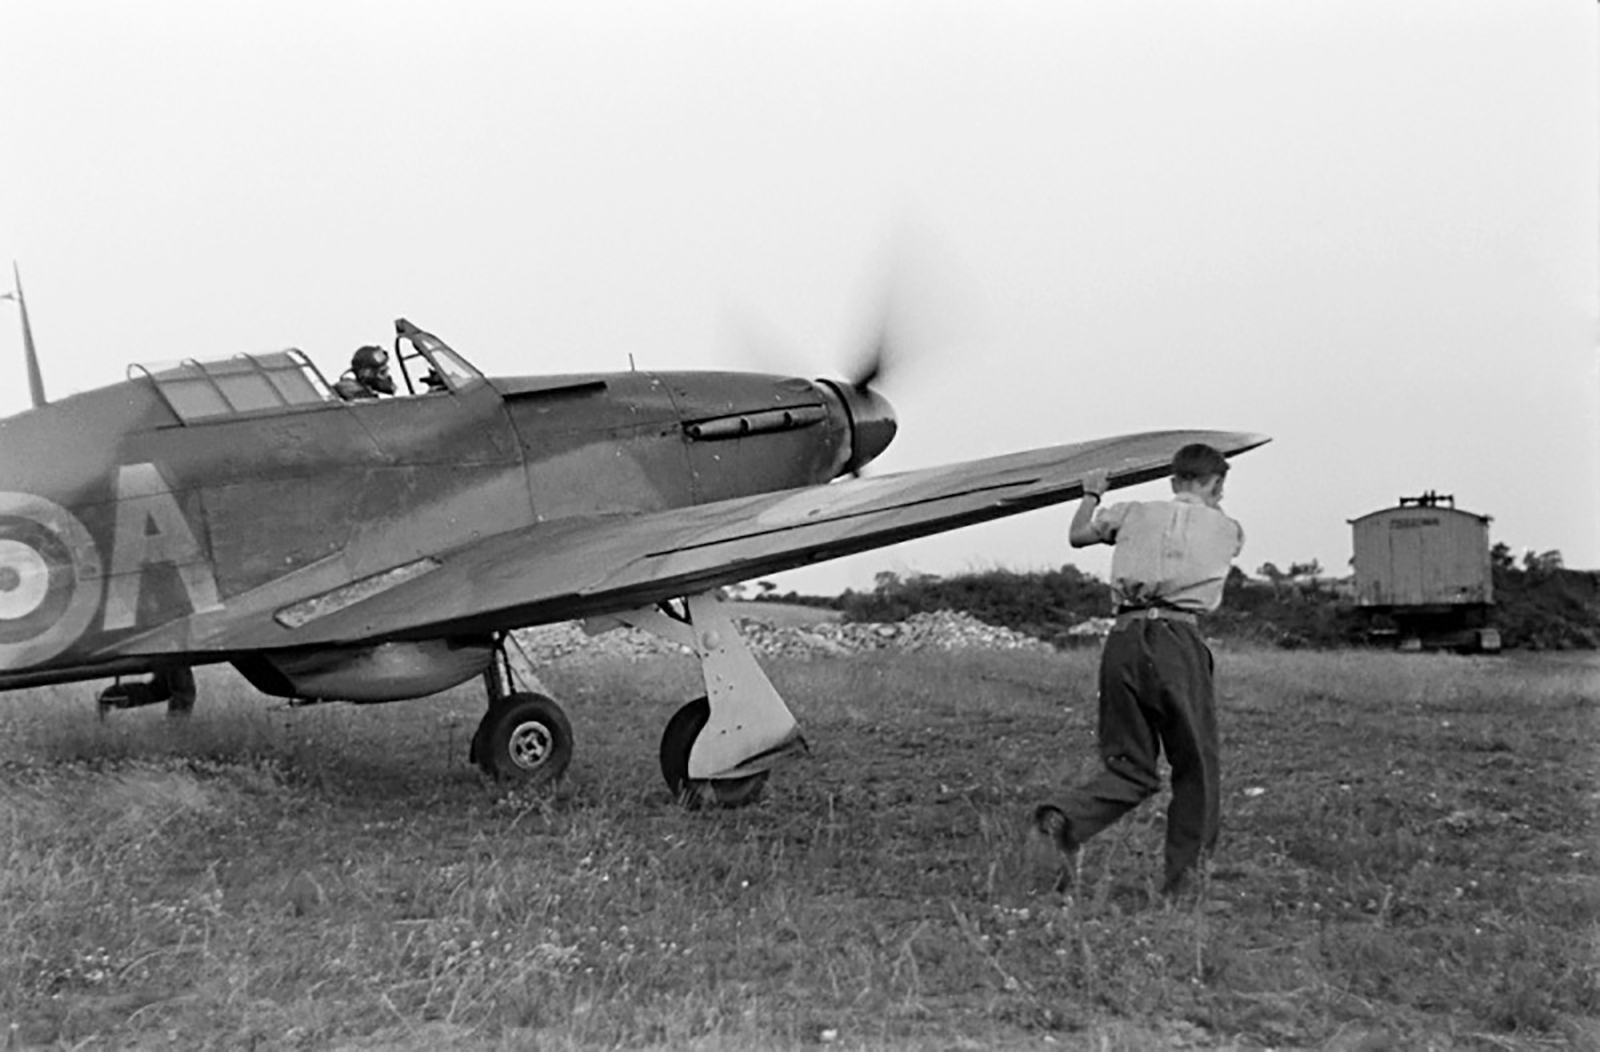 Hawker Hurricane IIa RAF being guided by ground crew as it taxis 1940 01